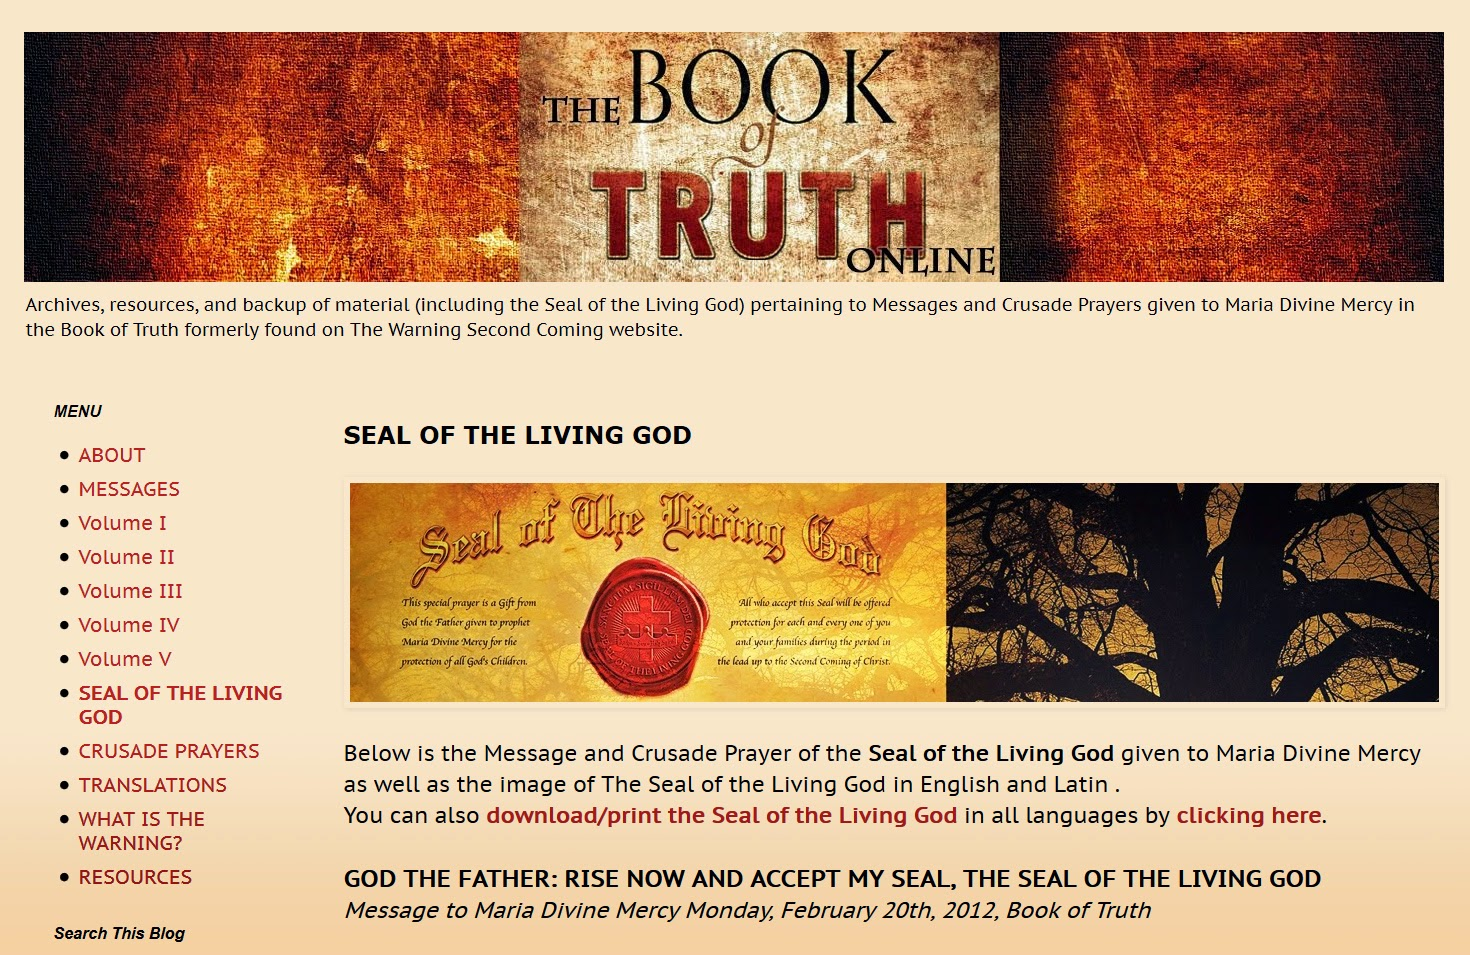 The Book Of Truth Online